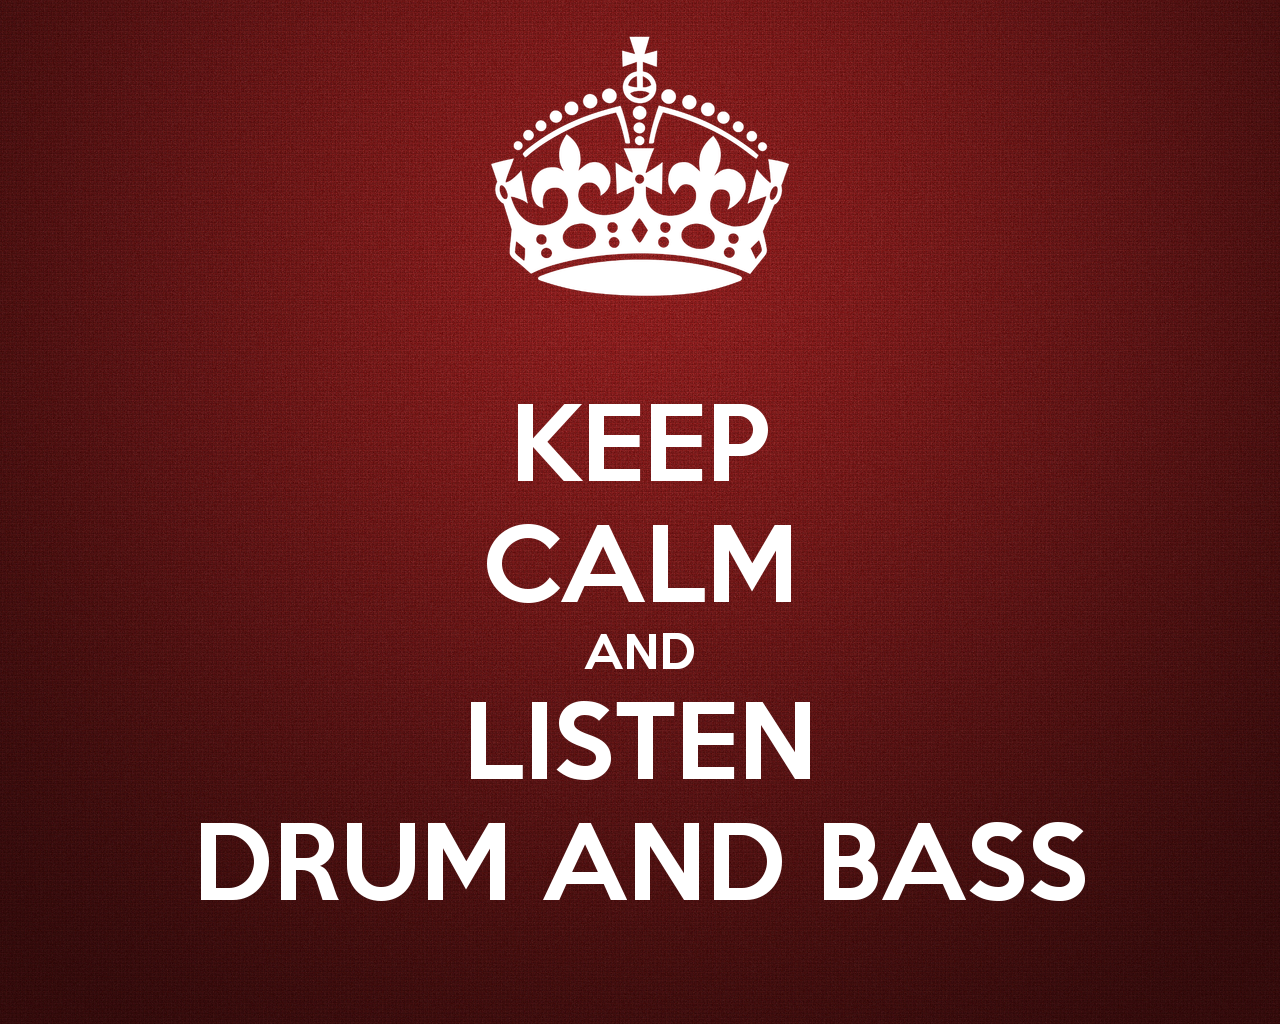 Keep Calm And Listen Drum And Bass Drum And Bass Always Calms Me